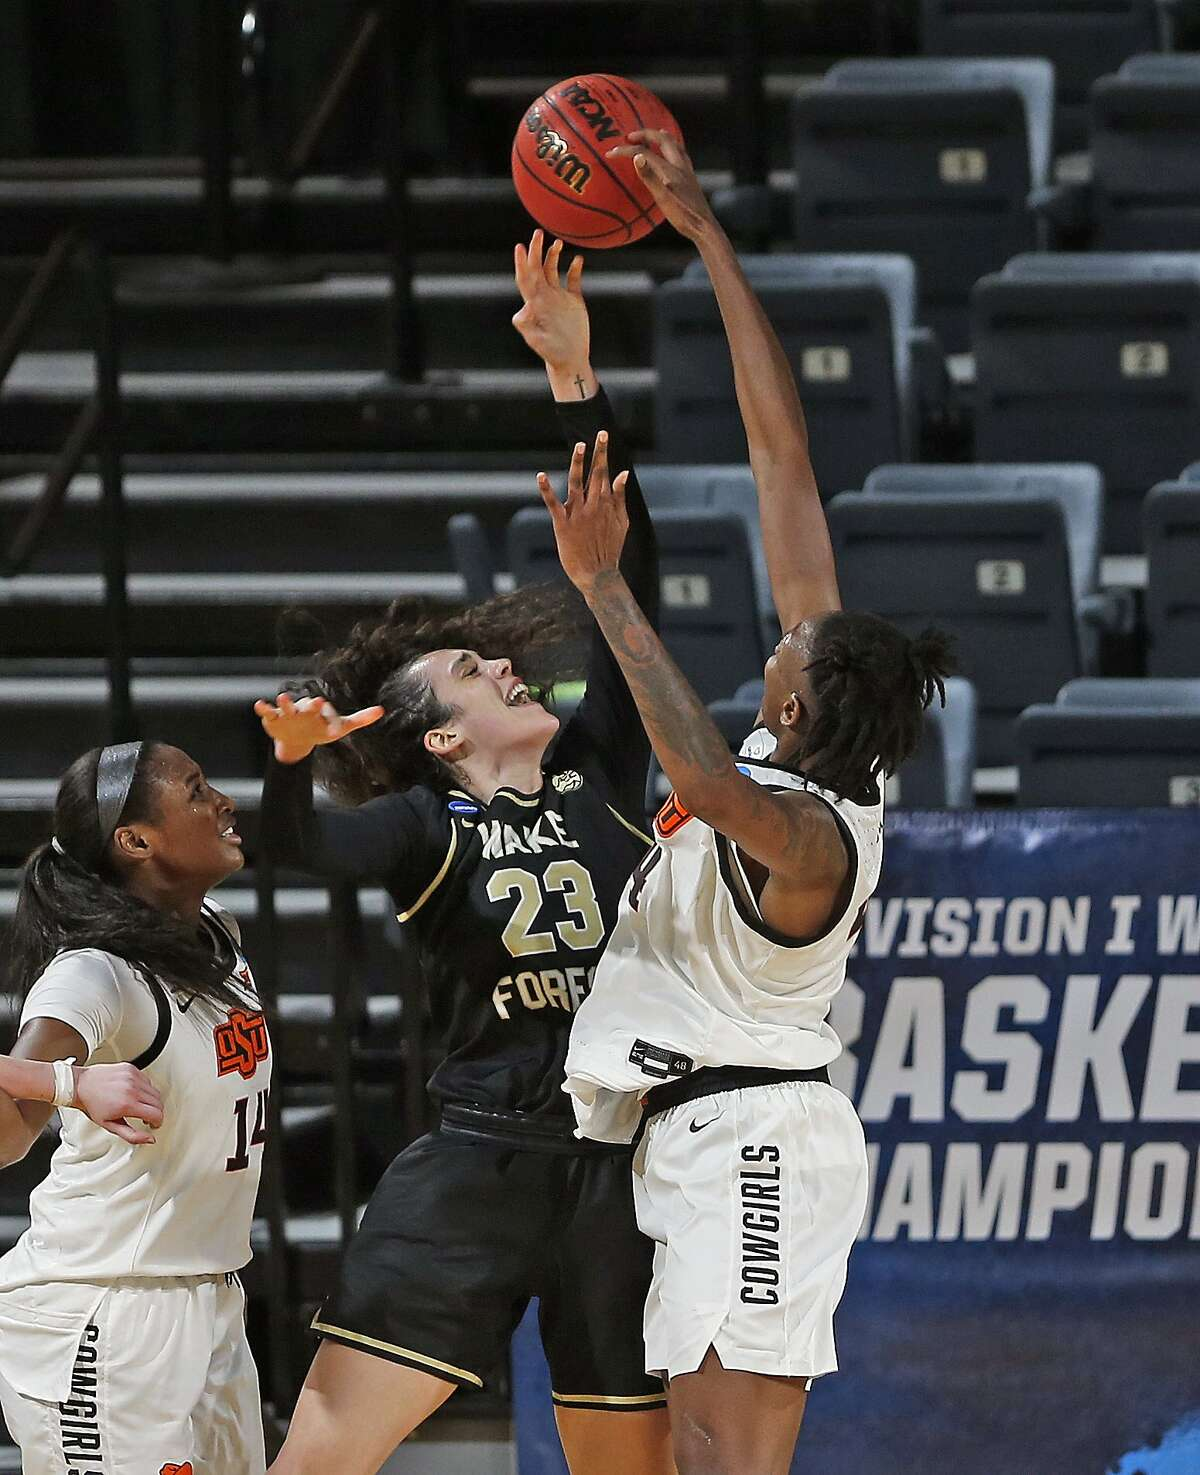 Oklahoma State forward Natasha Mack(4) blocks shot attempt of Wake Forest forward Christina Mora during the second half of a college basketball game in the first round of the women's NCAA tournament at the Greehey Arena in San Antonio, Texas, Sunday, March 21, 2021. (AP Photo/Ronald Cortes)